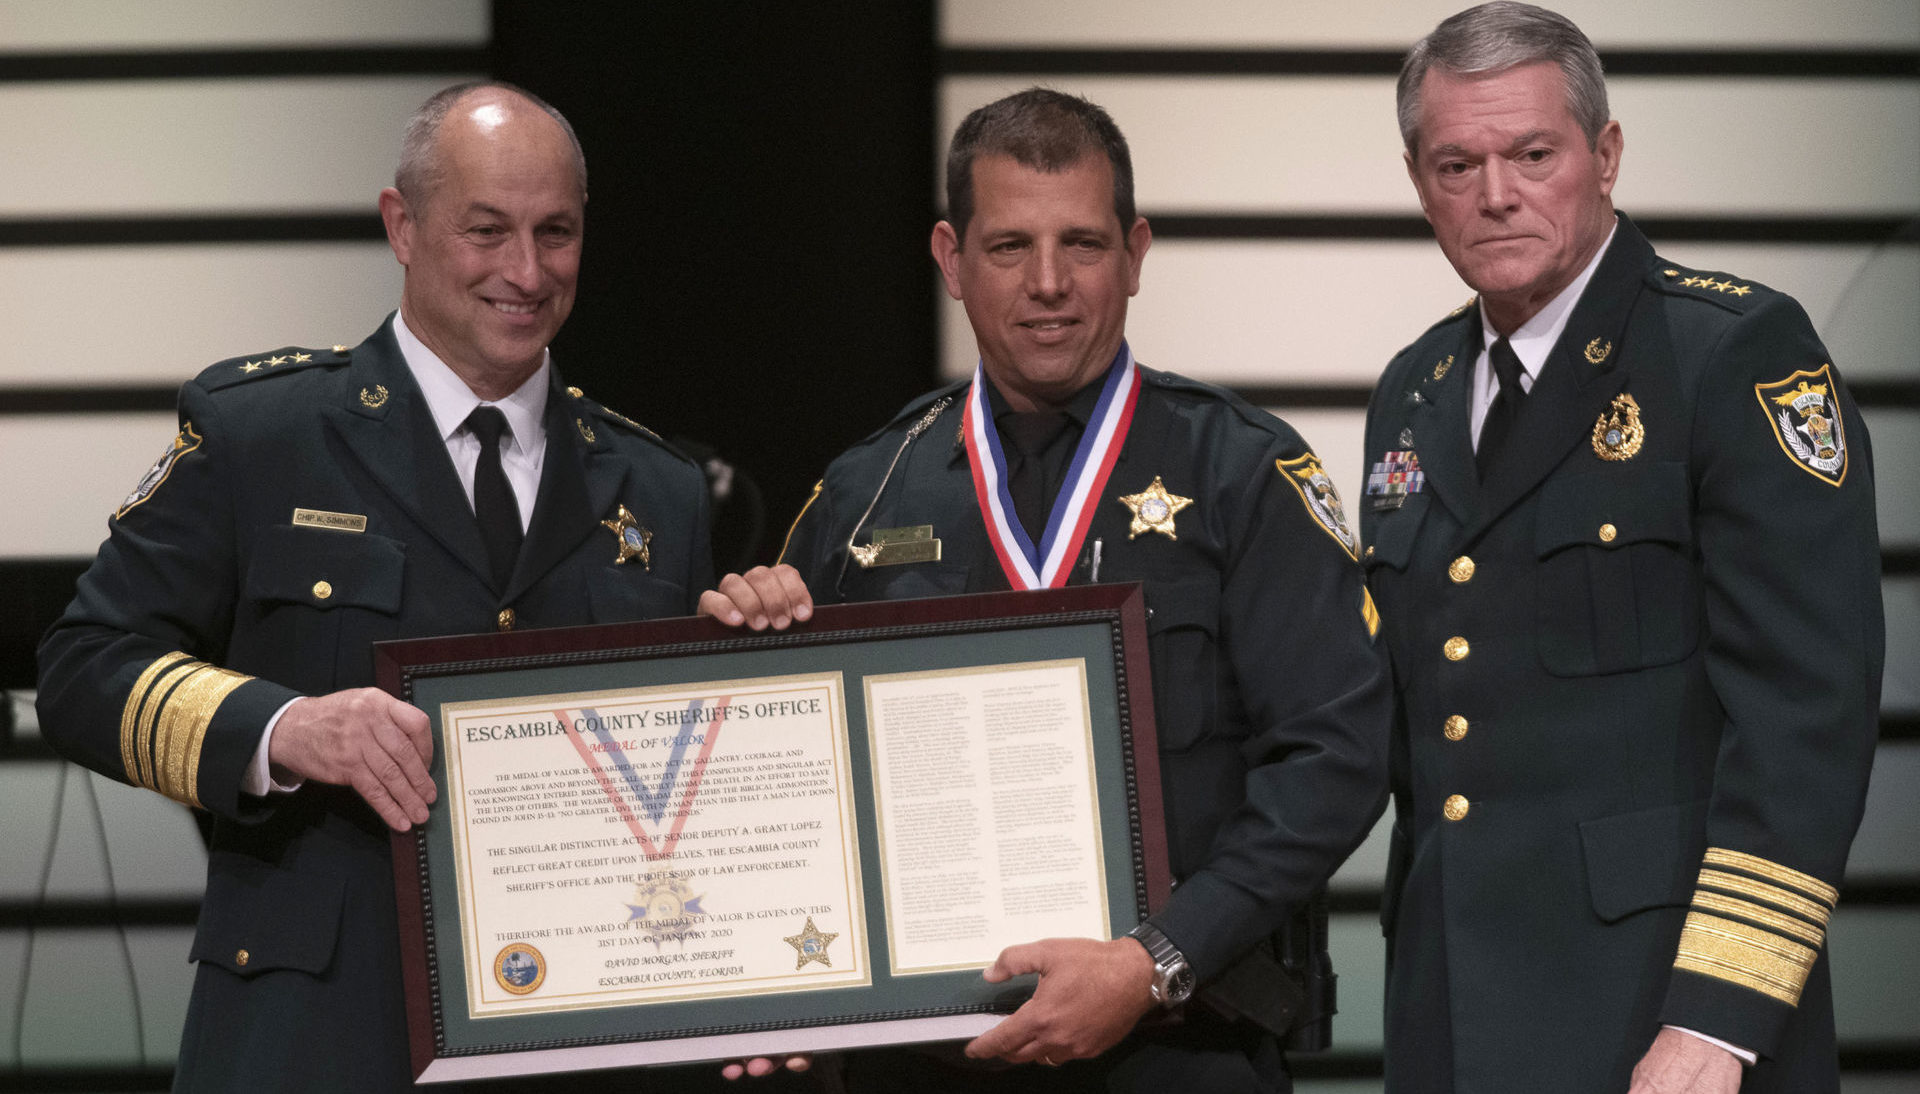 Escambia County Sheriff David Morgan (left), Senior Deputy A. Grant Lopez (center), and Chief Deputy Chip Simmons (right) at the Escambia County Sheriff's Office award ceremony January 31, 2019, in Pensacola, Florida. Photo courtesy of the Escambia County Sheriff's Office.